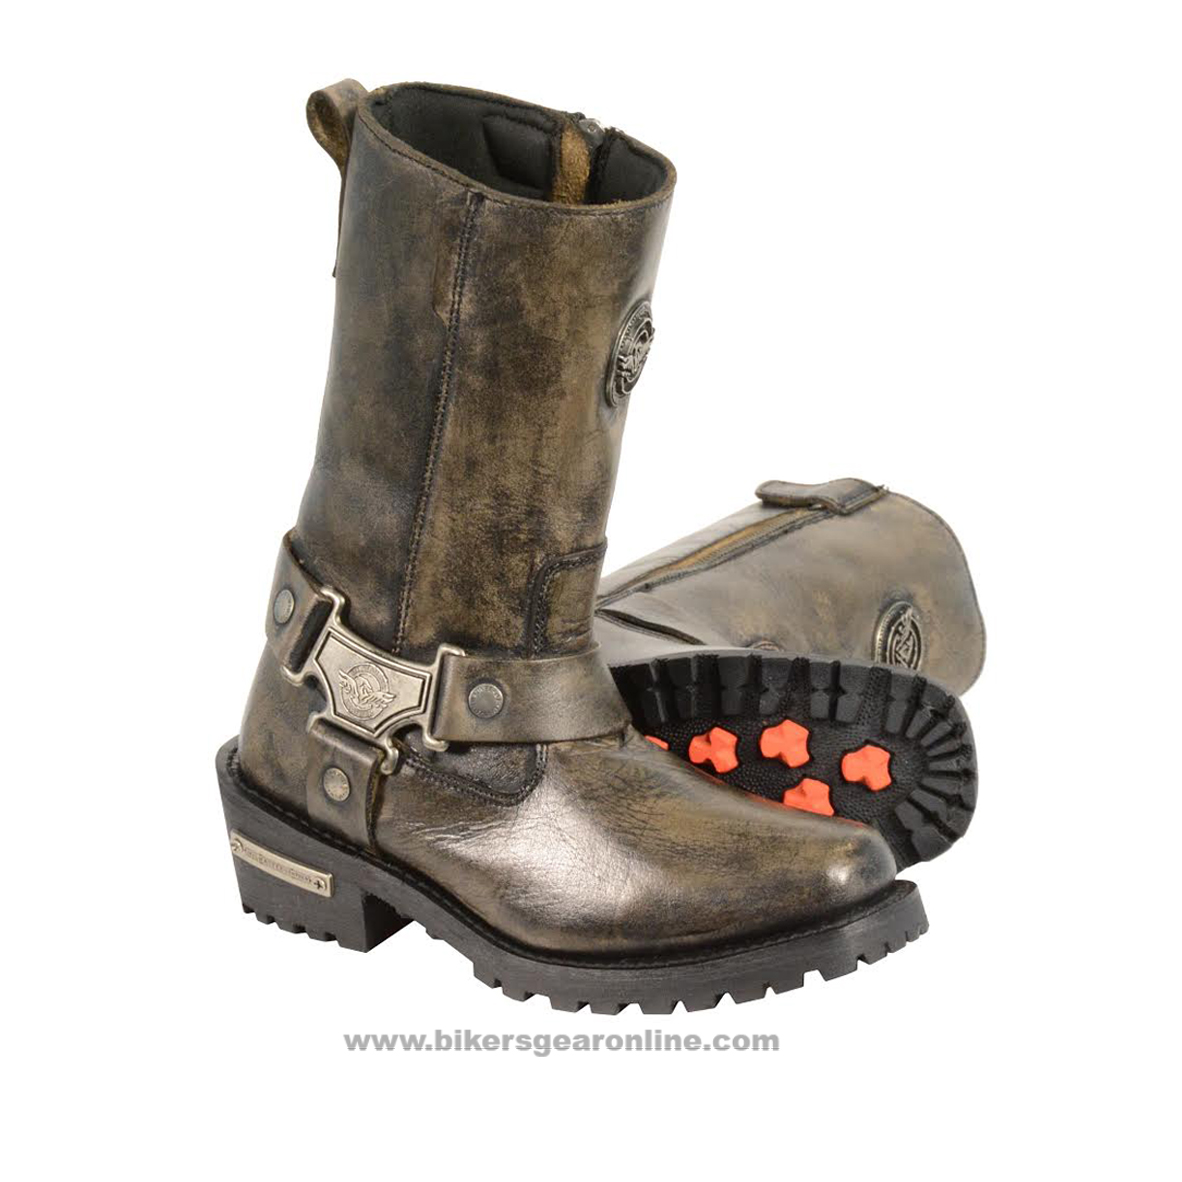 c76757a9f5a Mens Leather Motorcycle Boots for Sale - Extreme Biker Boots